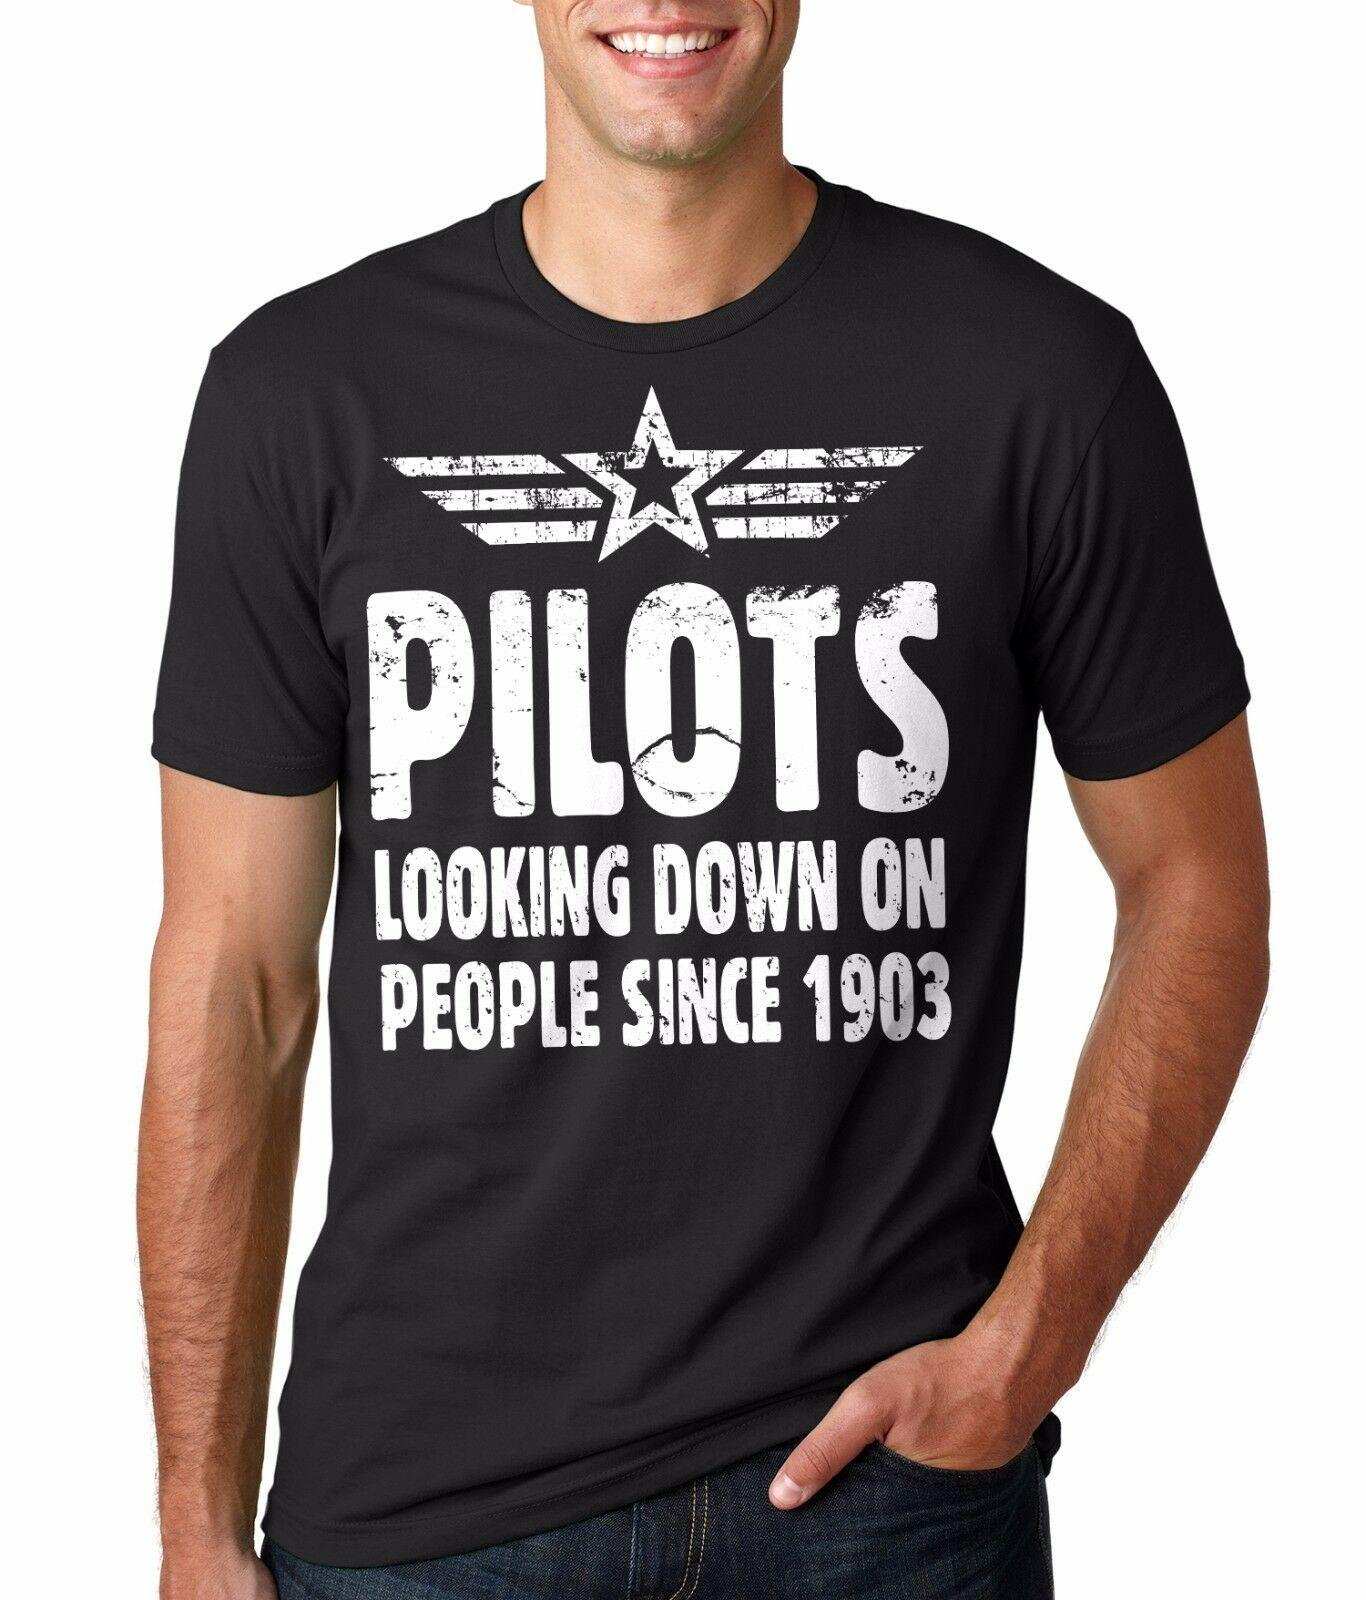 a2c323b44 Gift For Pilot T Shirt Pilots Looking Down On People Since 1903 Funny T  Shirt Fashion Style Men Tee 2019 Fashion T Shirt Buy T Shirts Online T Shirt  From ...